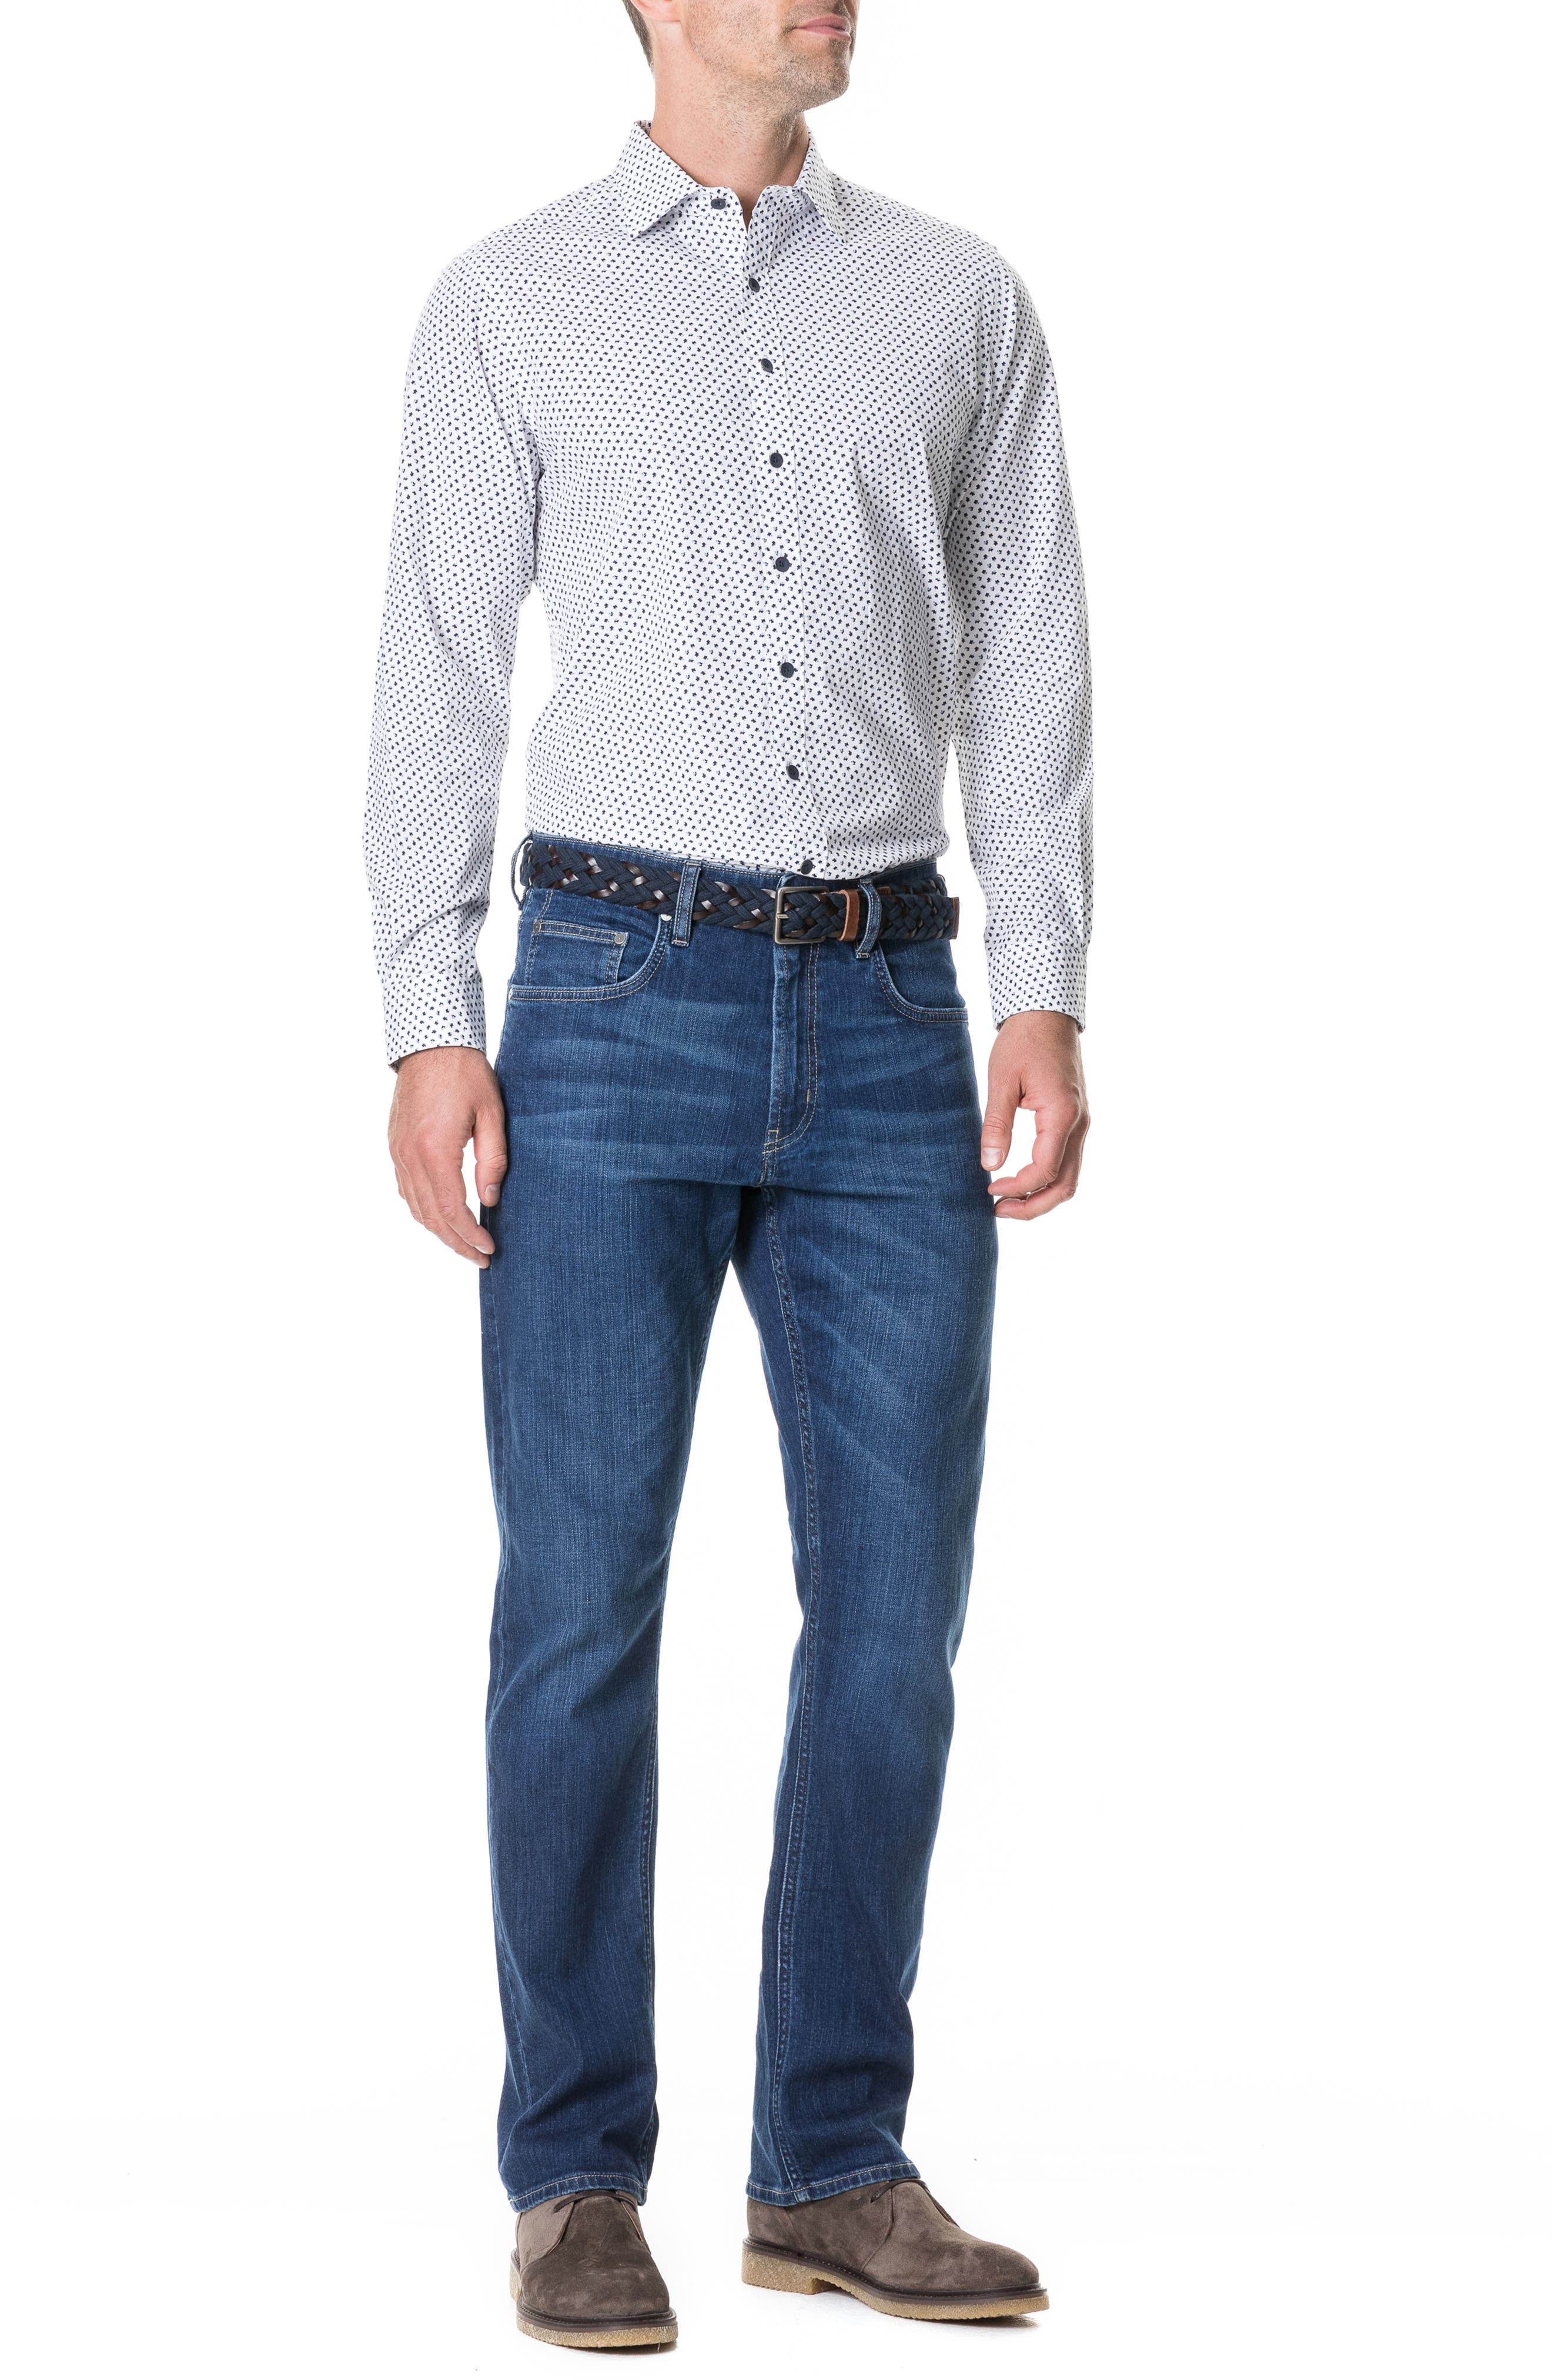 Byron Relaxed Fit Jeans,                             Alternate thumbnail 3, color,                             DENIM